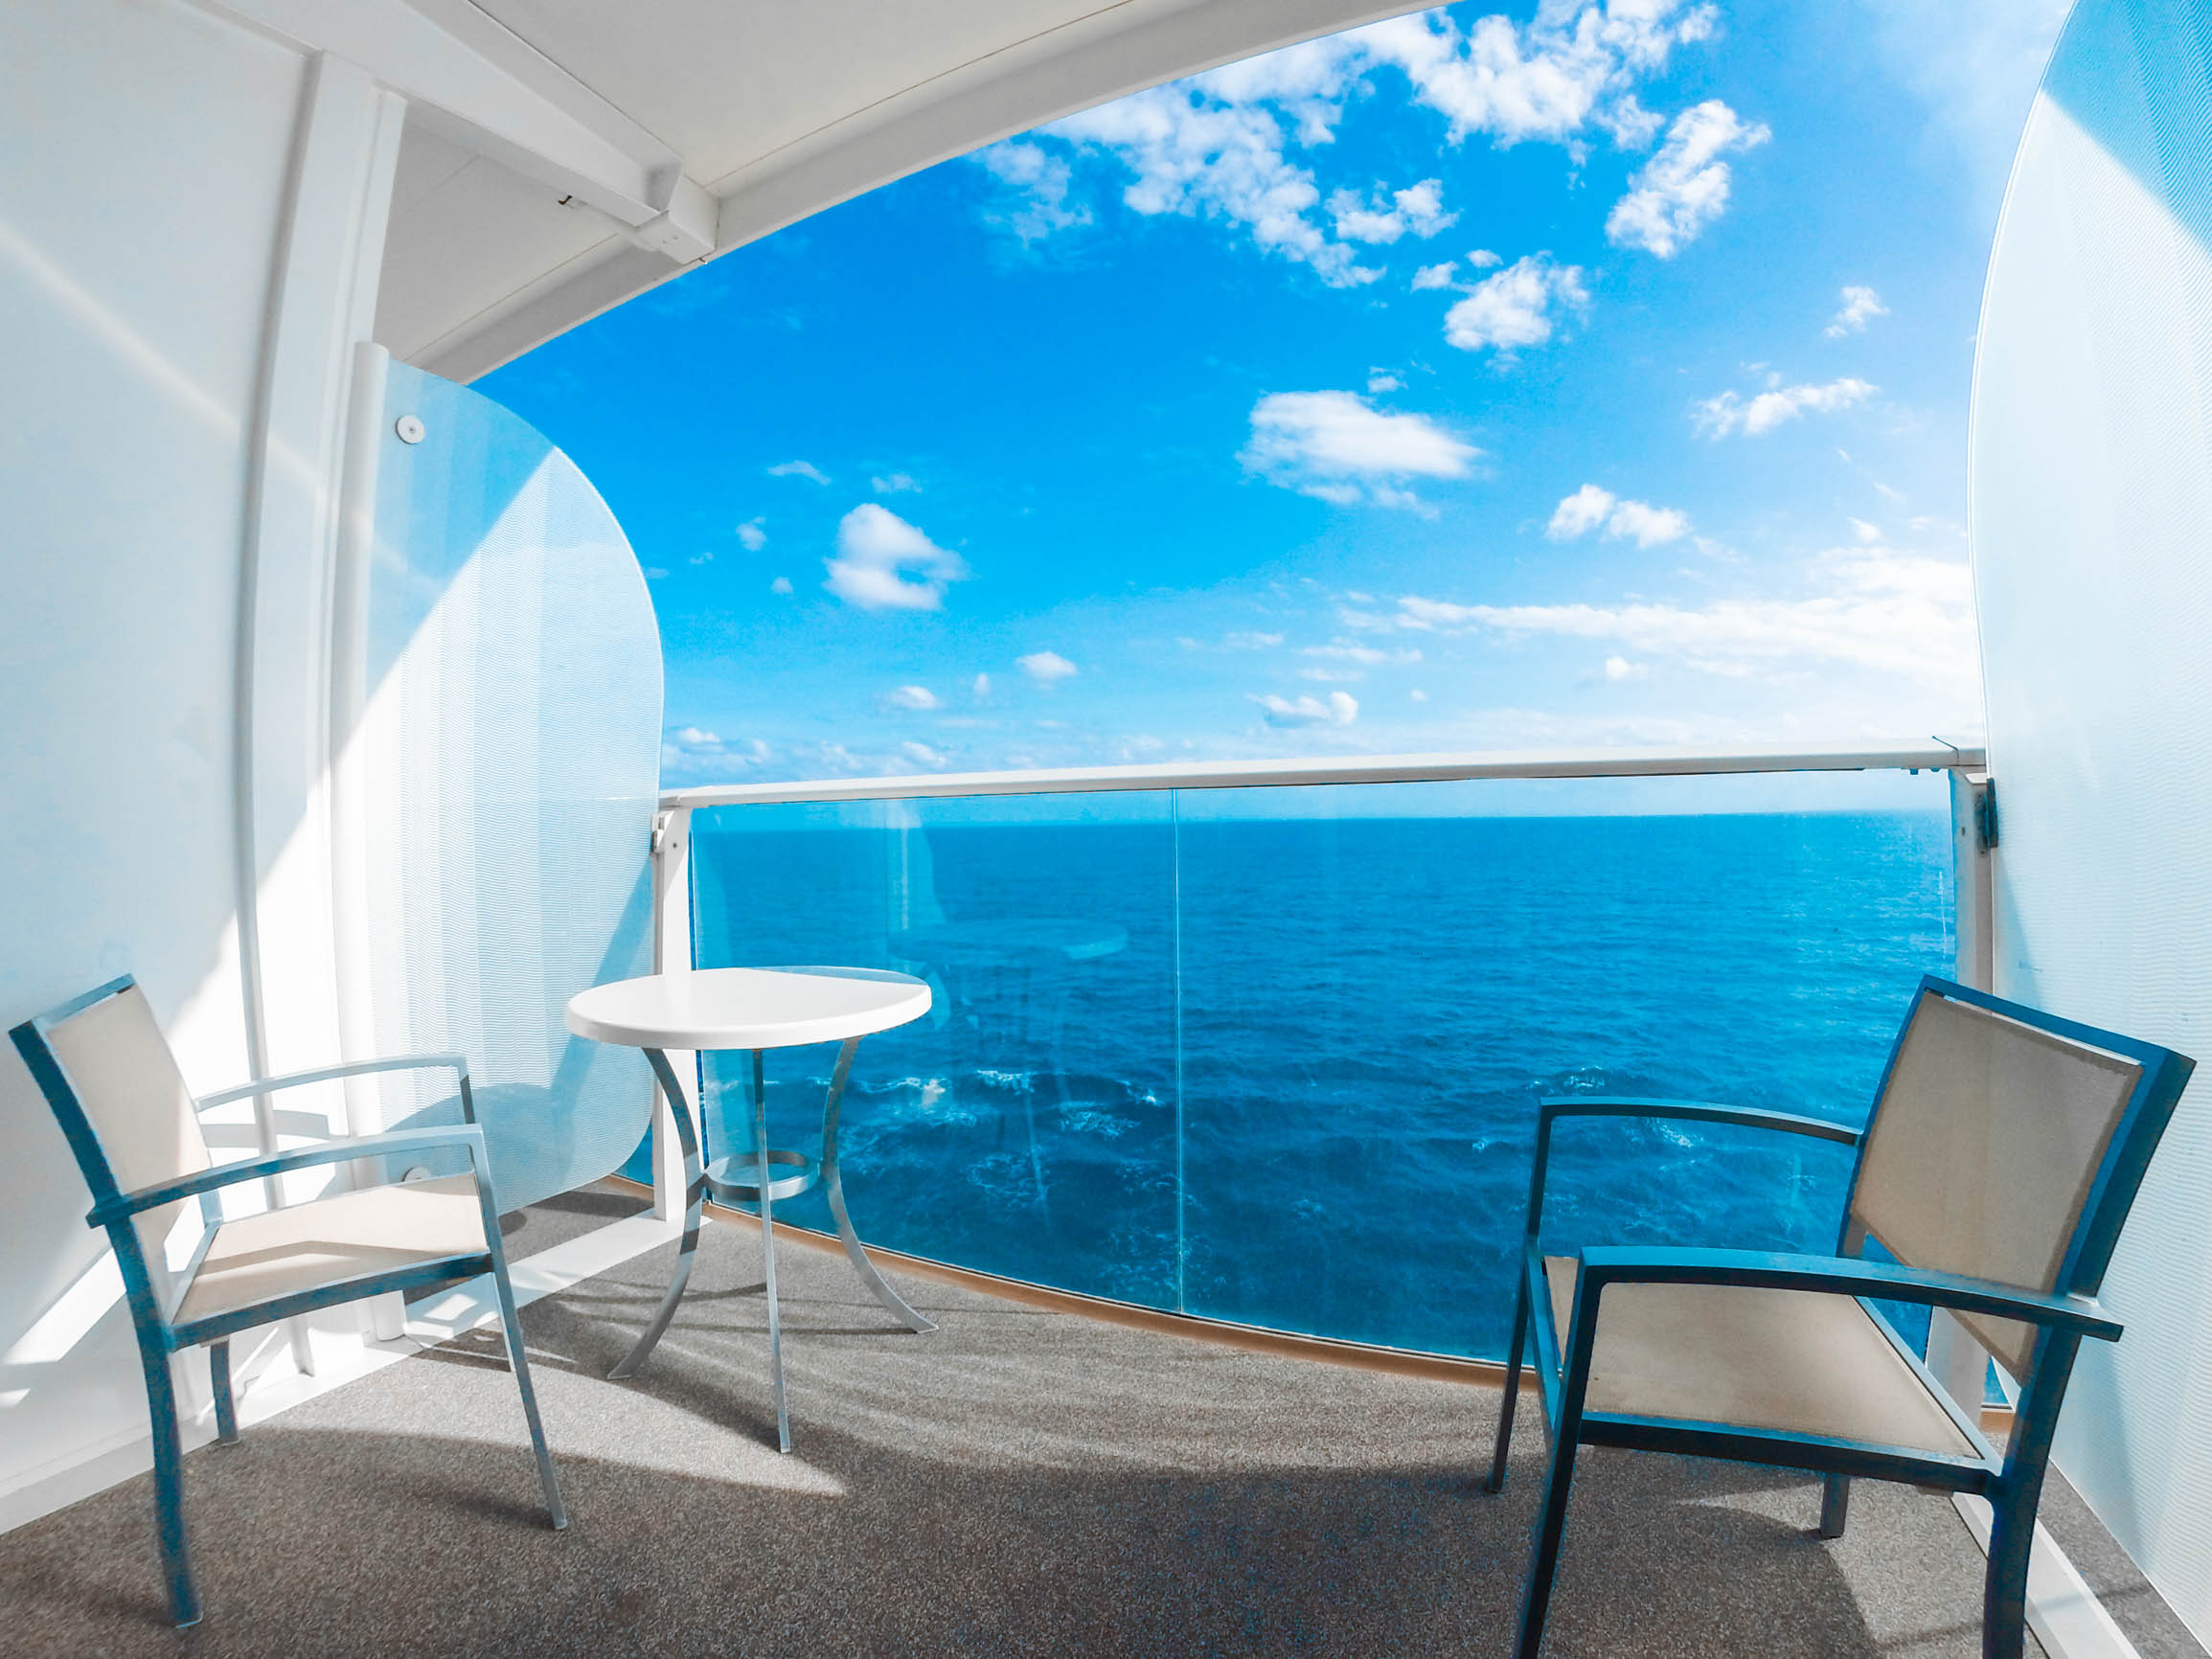 �'Ҽ��ձ����� Royal Caribbean Cruise ���������� Allure of the Seas ����������԰+������˹+�����ձ�12���������� 2019��2��23�ձ������� �����ܵǴ� ���߱��:7719022311